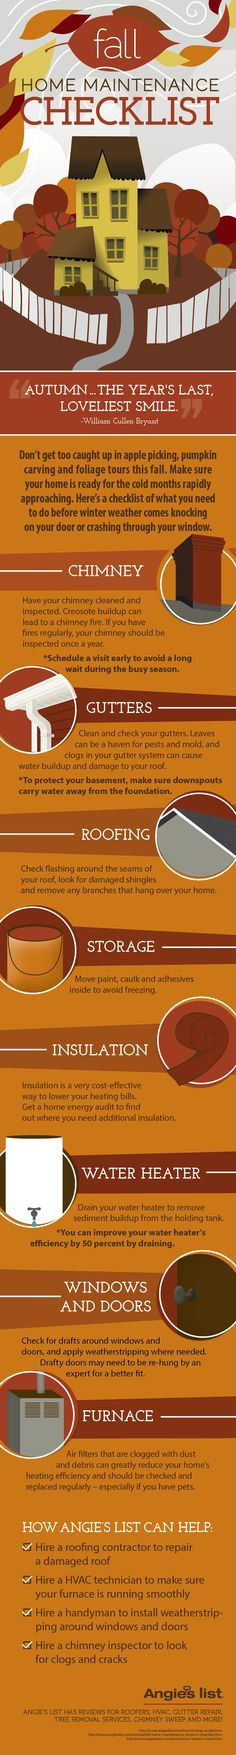 Fall home maintenance checklist | Angies List